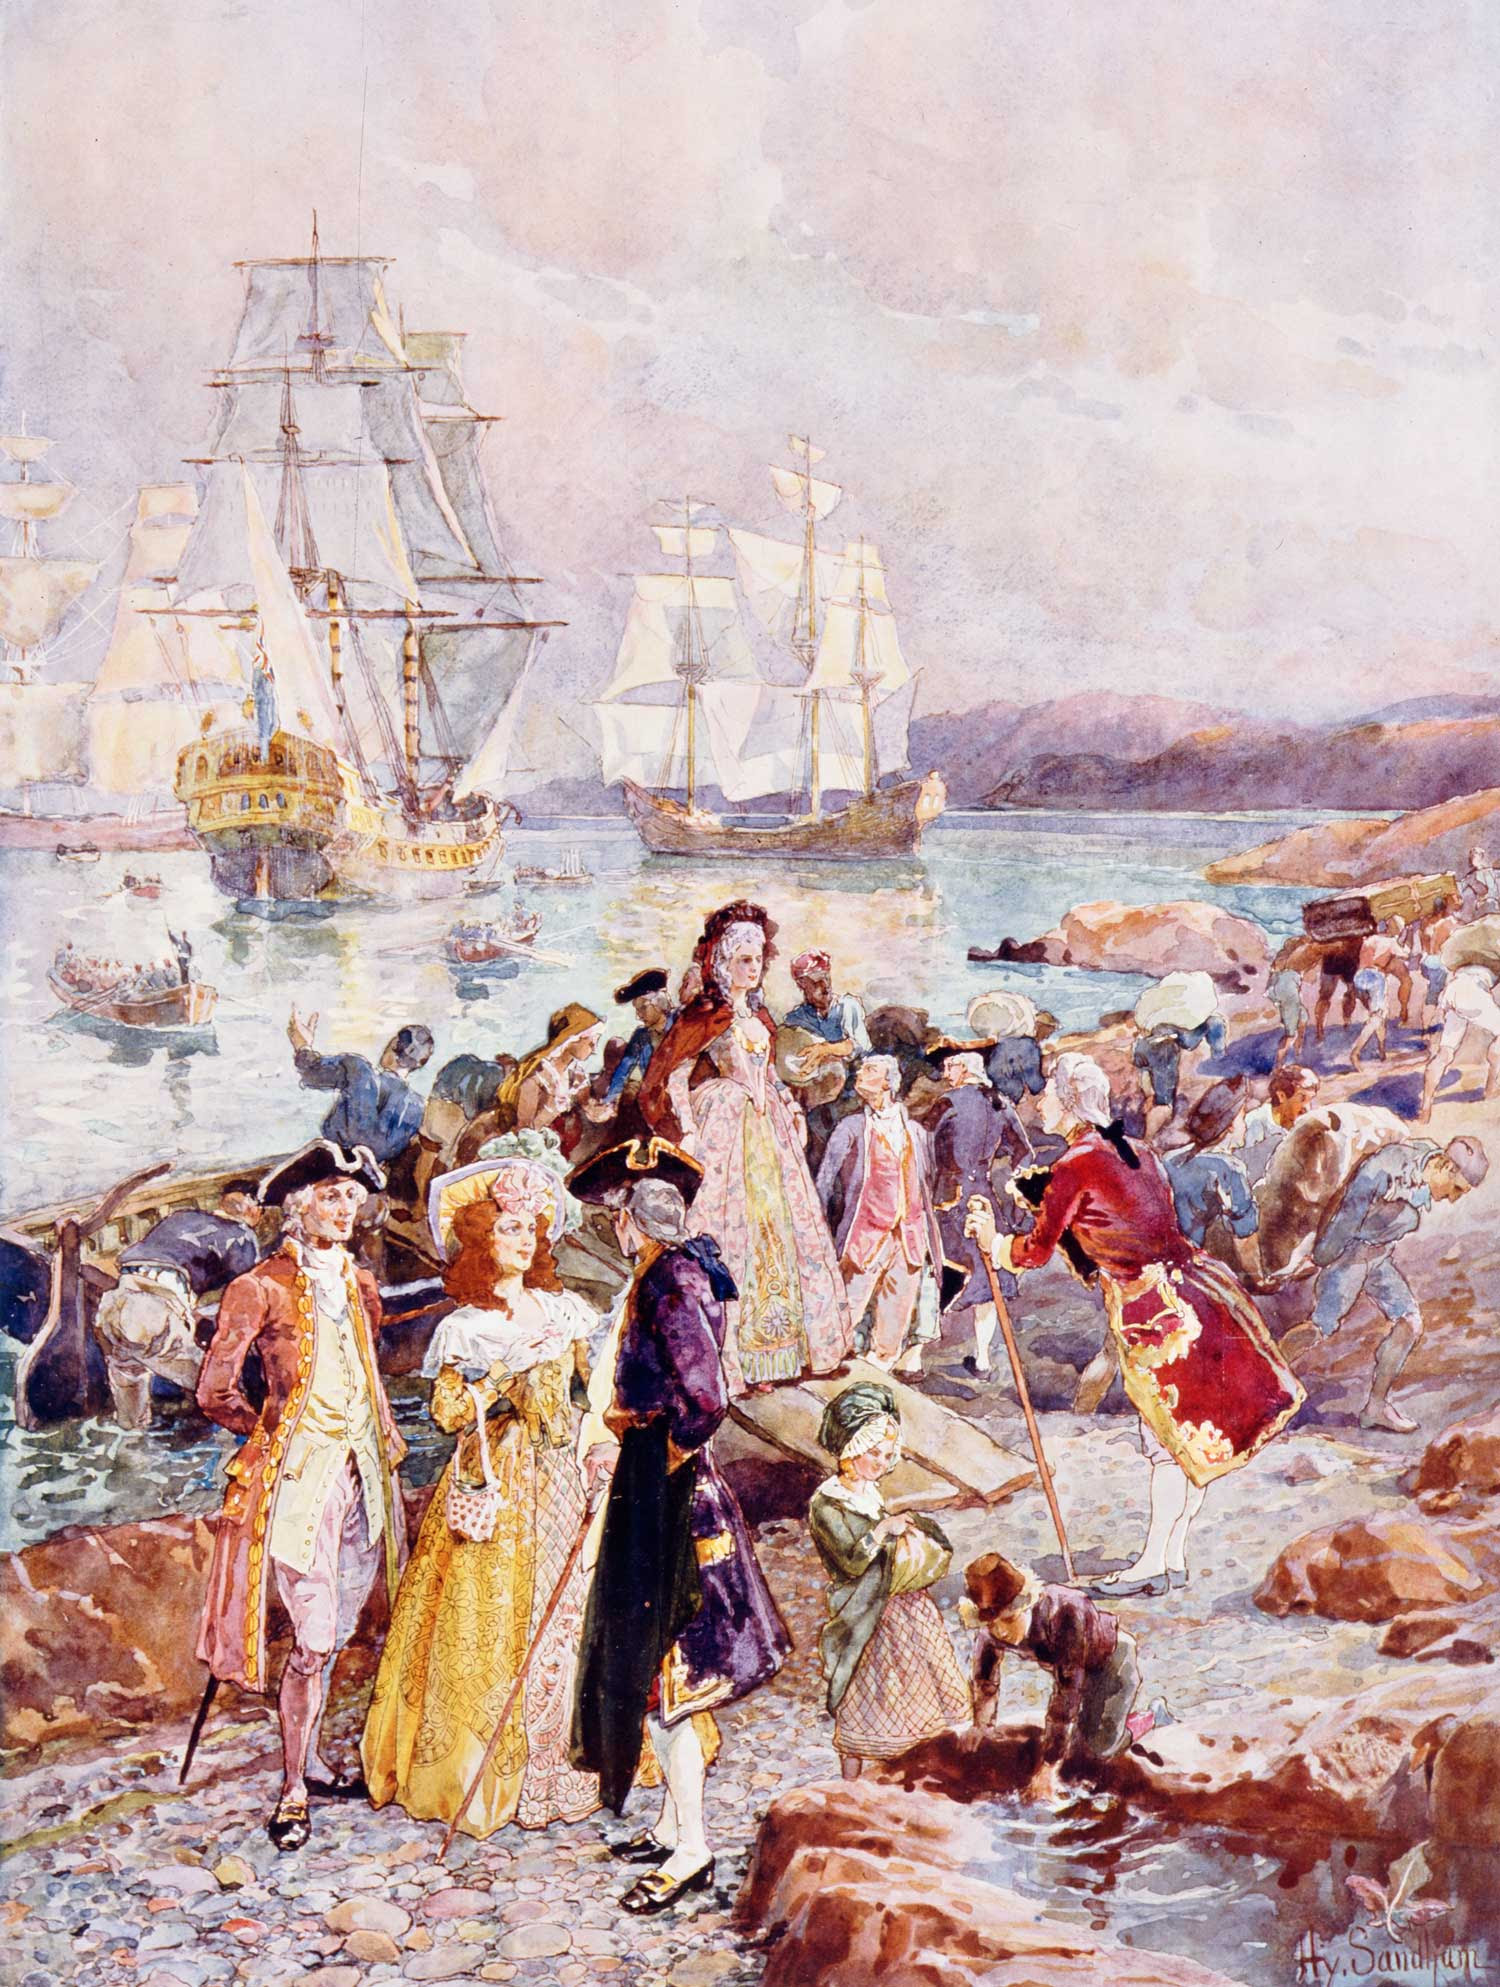 Henry Sandham: The Coming of the Loyalists